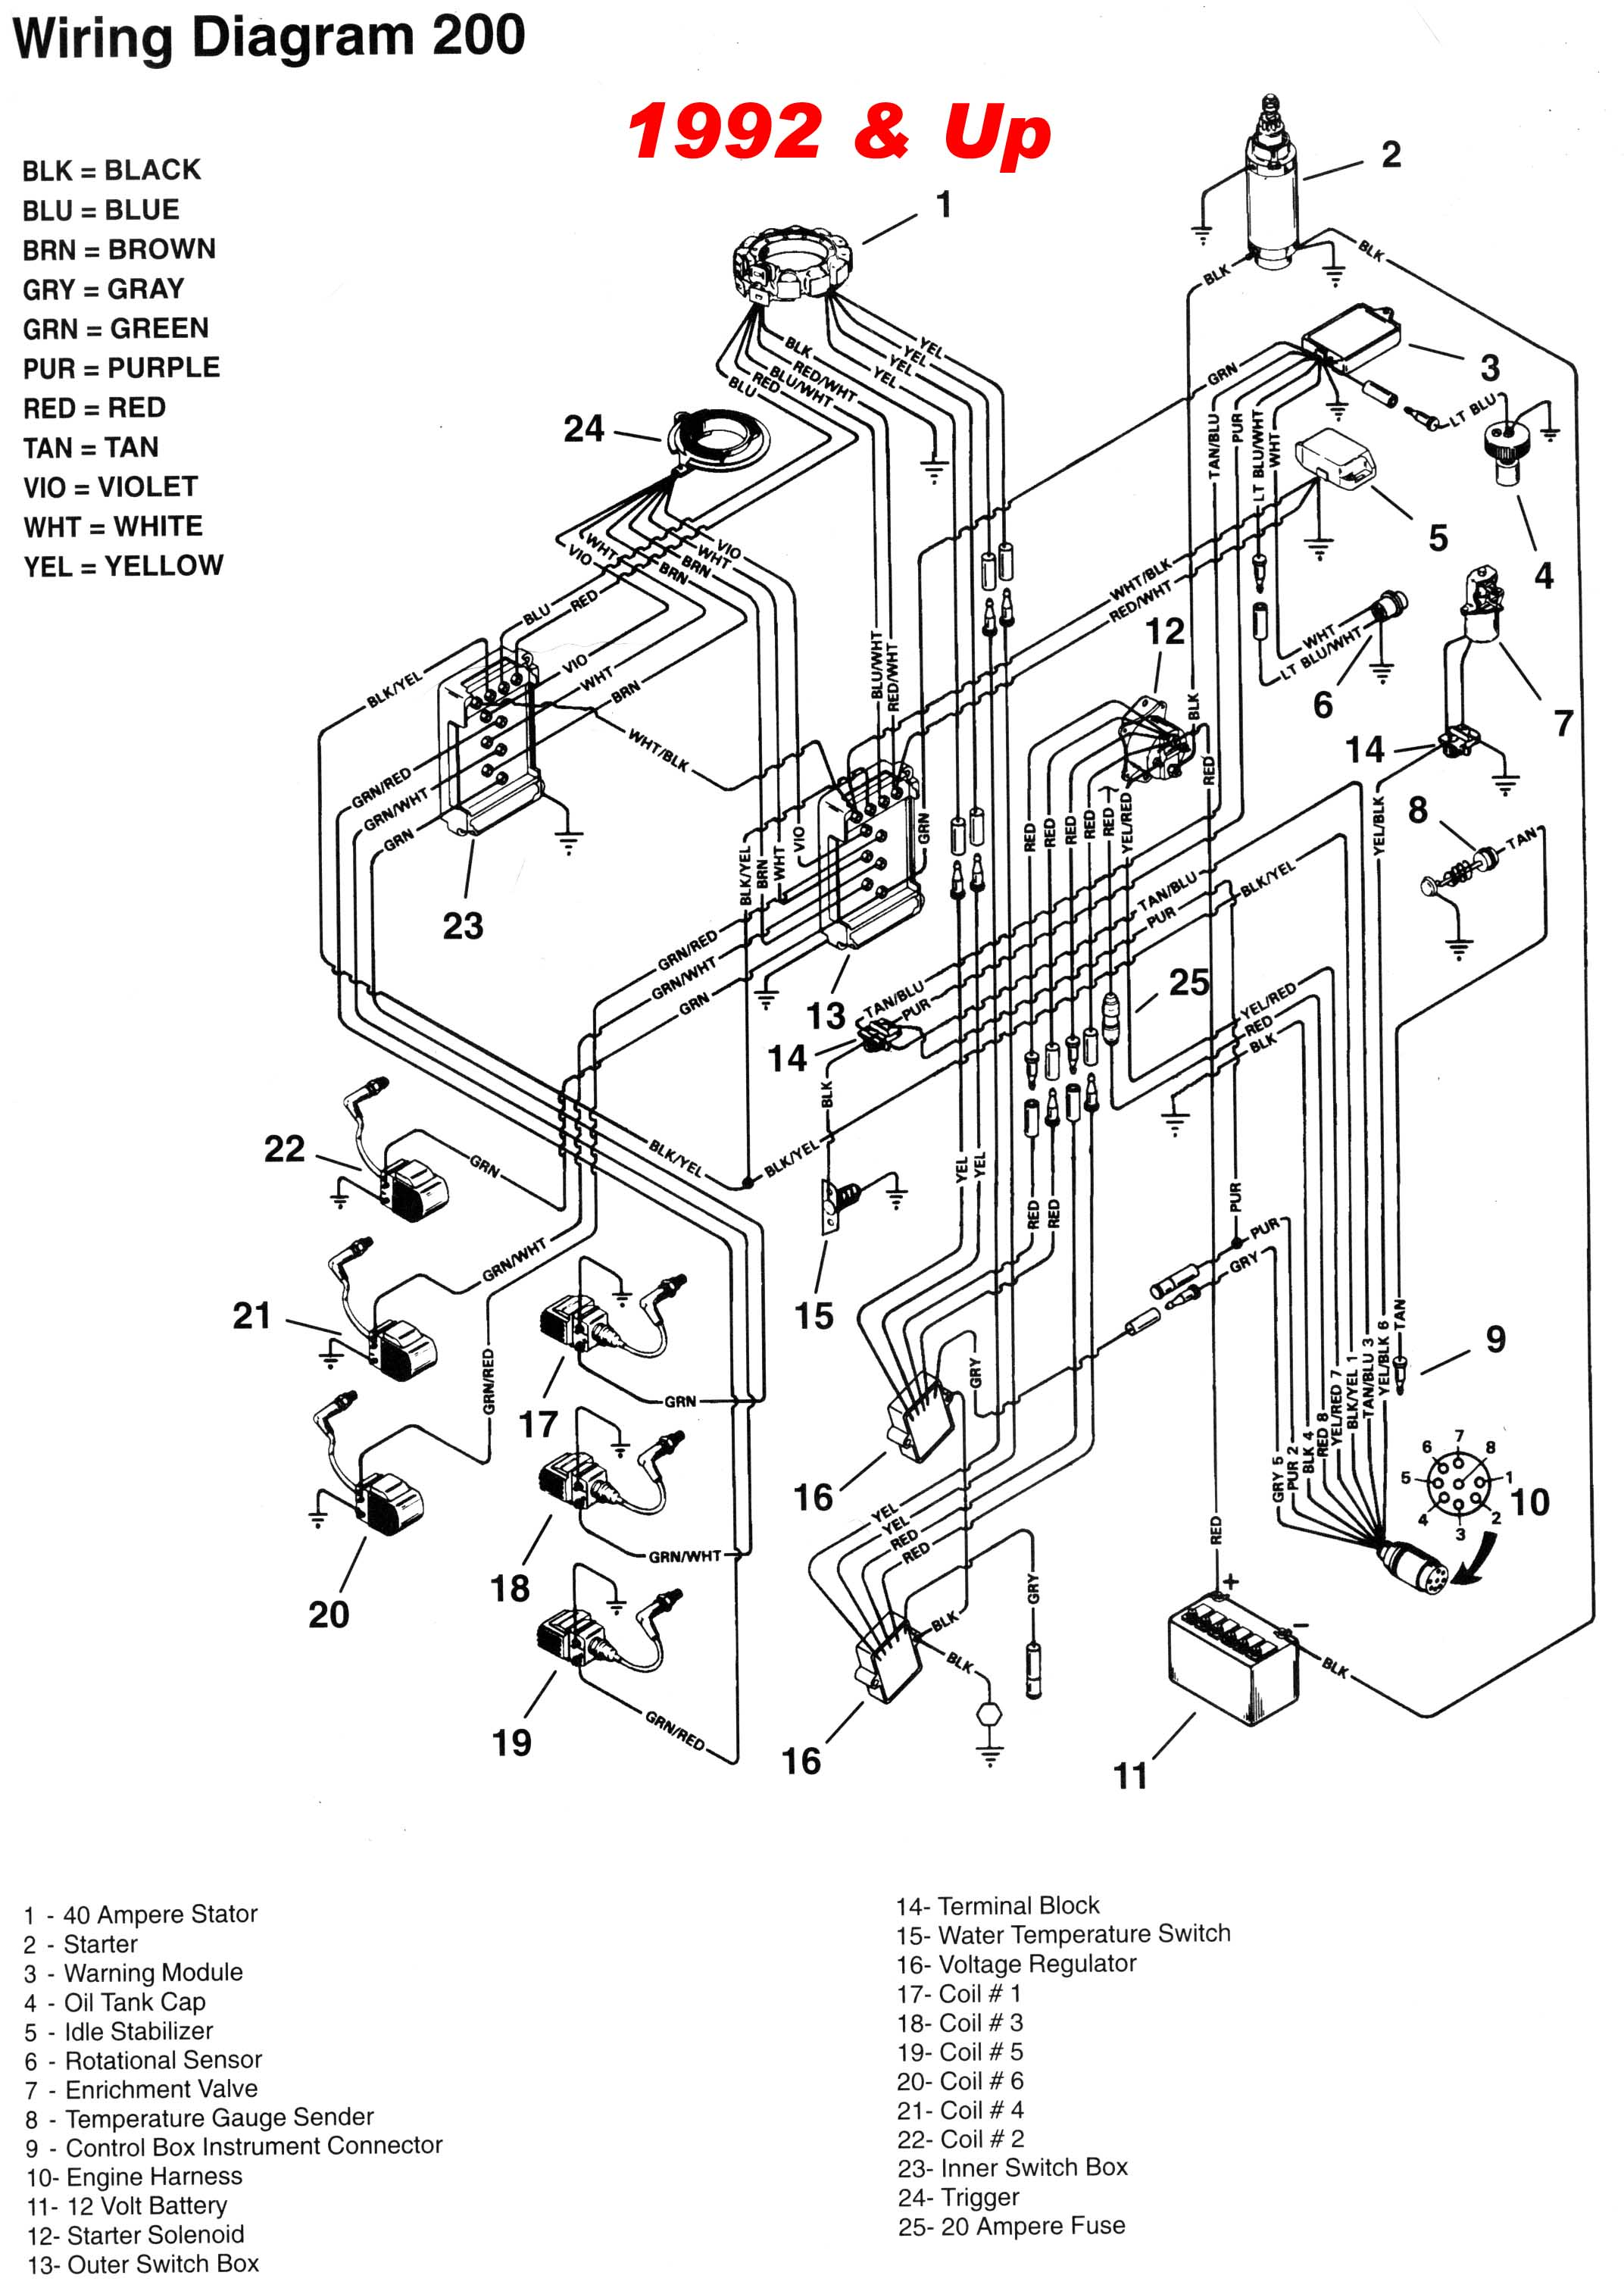 Wiring Diagram 3 0 Merc,Diagram • Wiring Diagrams